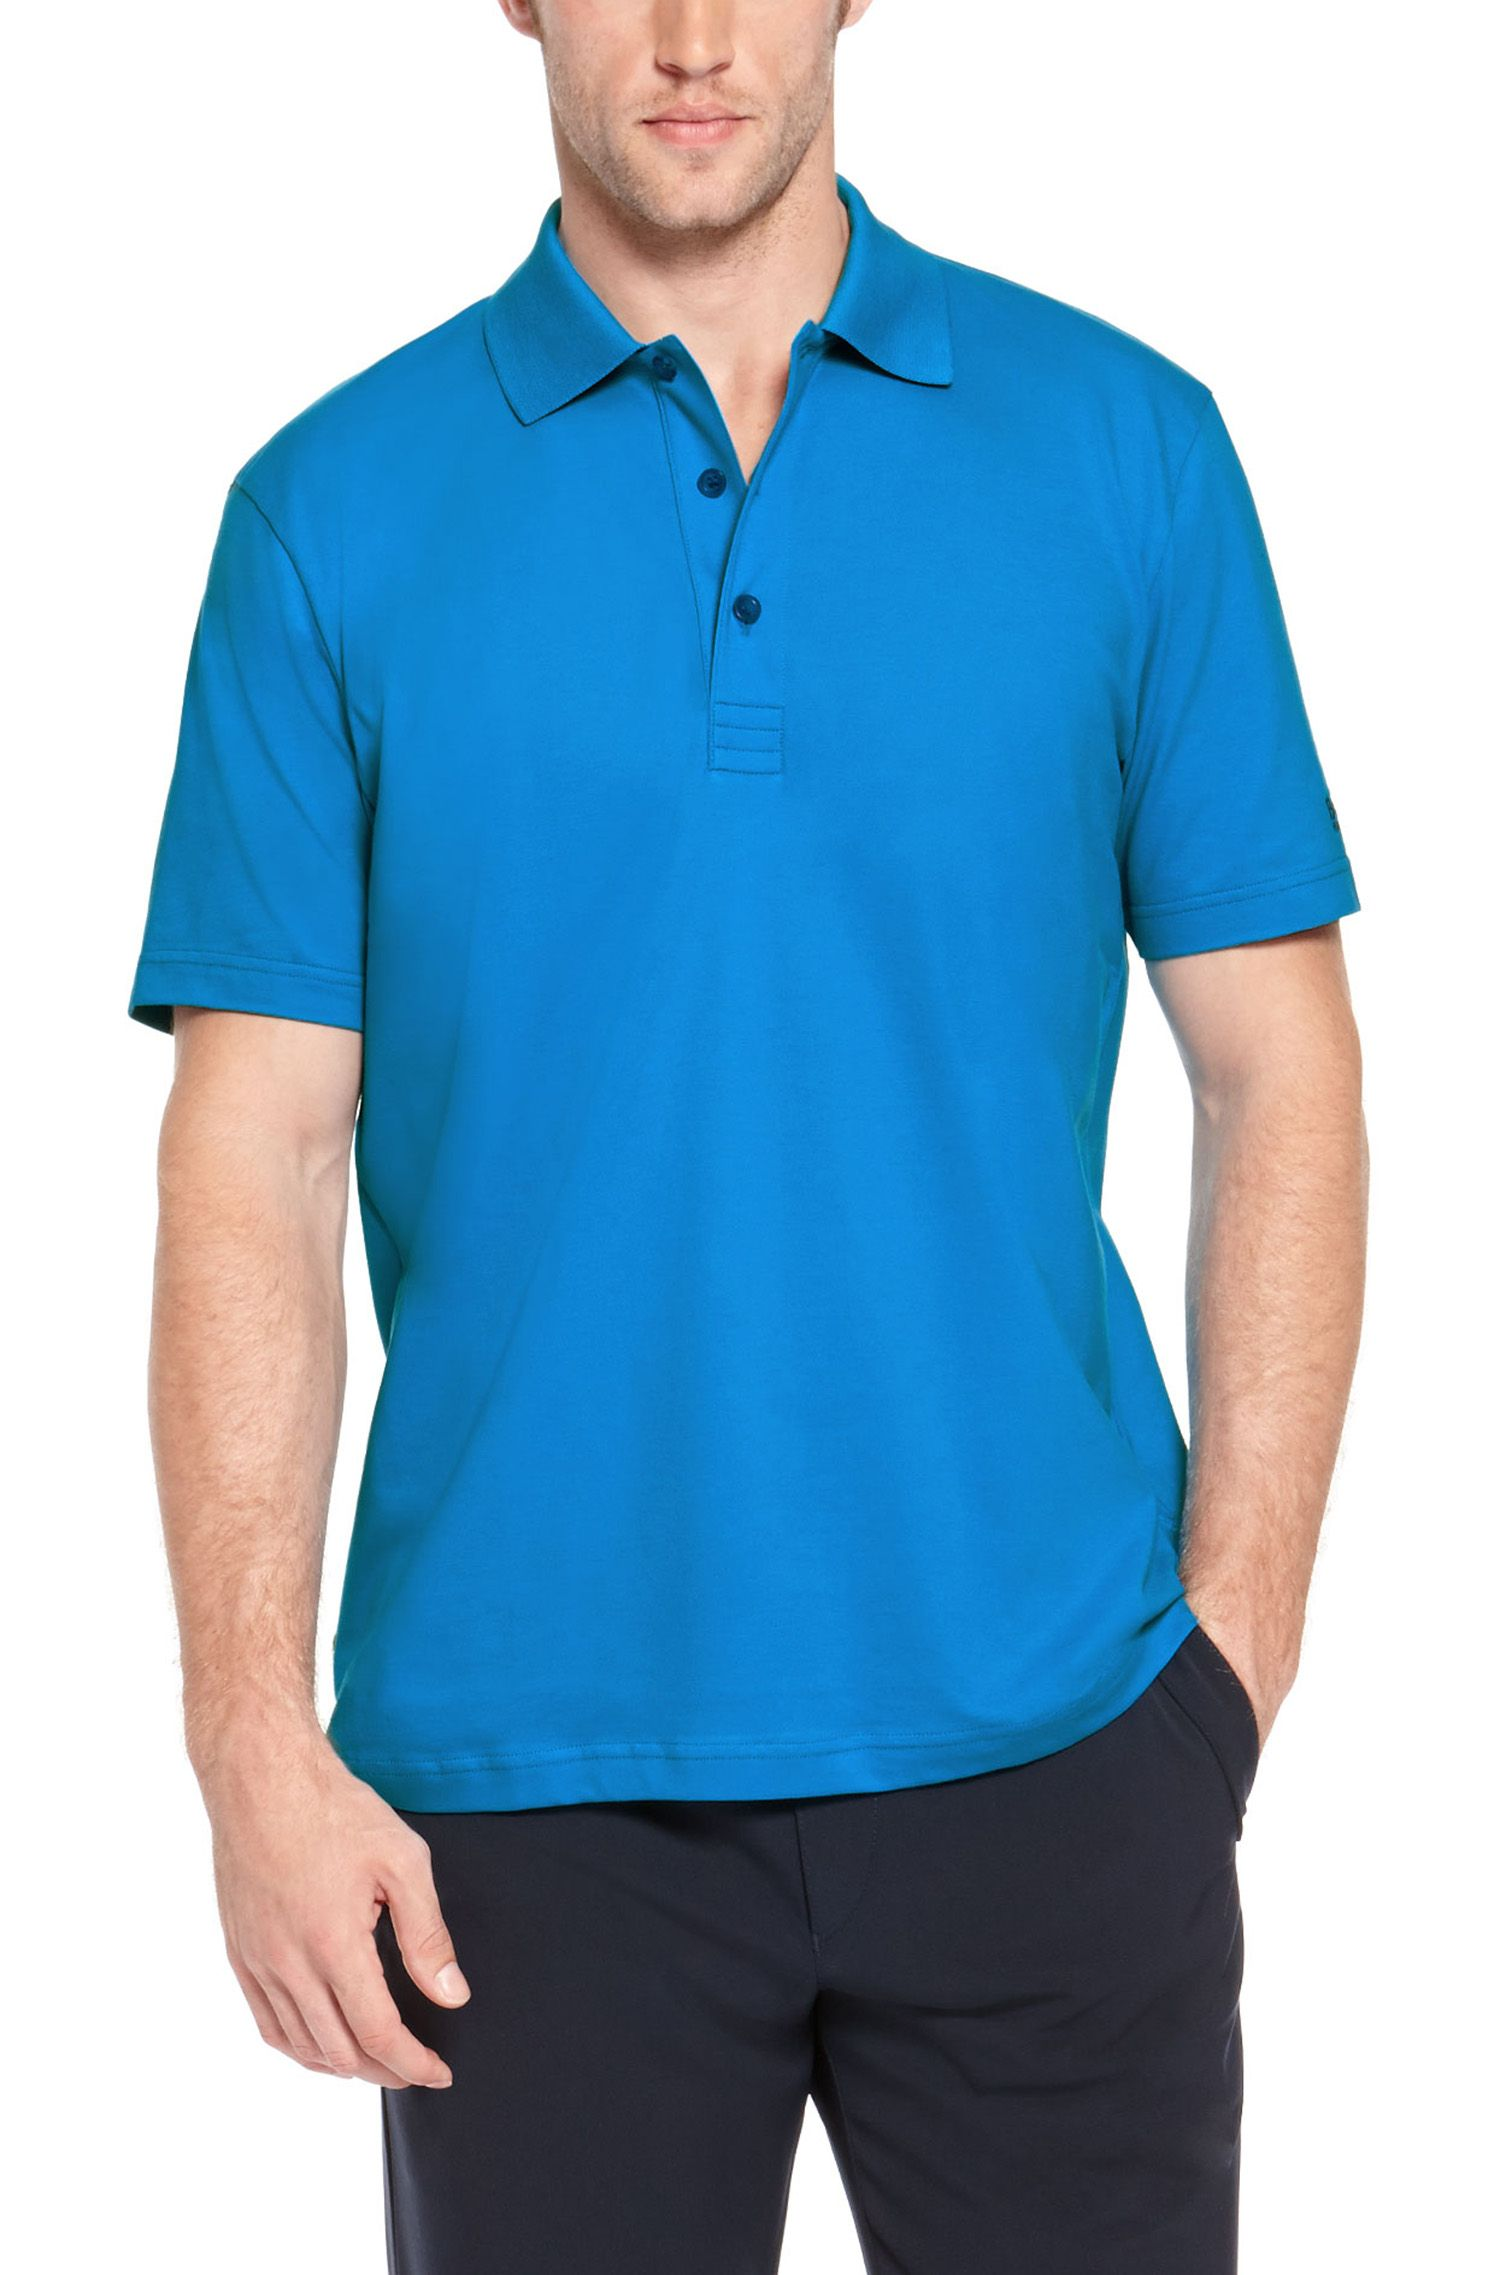 'Patrick US' | Regular Fit, Cotton Stretch Polo Shirt